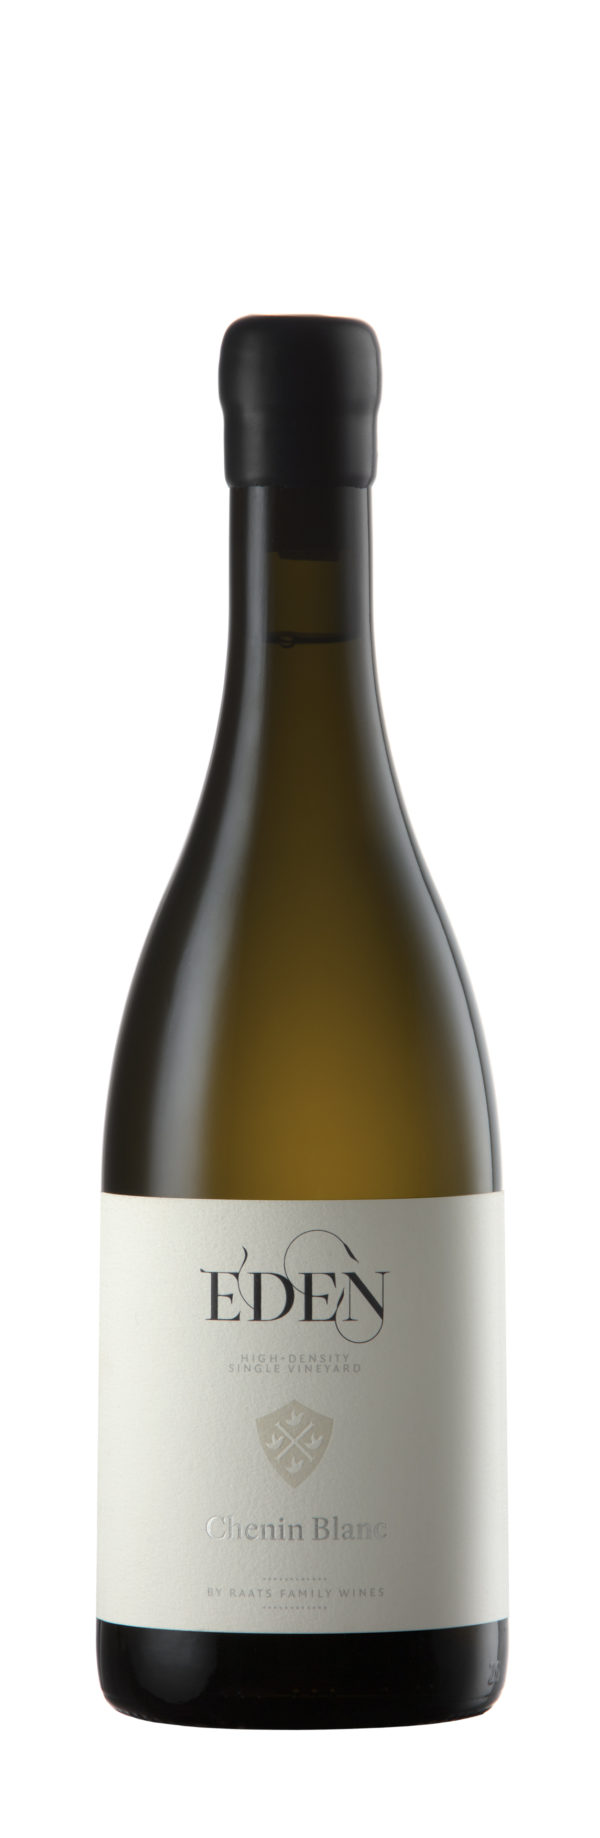 Raats Eden Valley High Density Chenin Blanc 2014